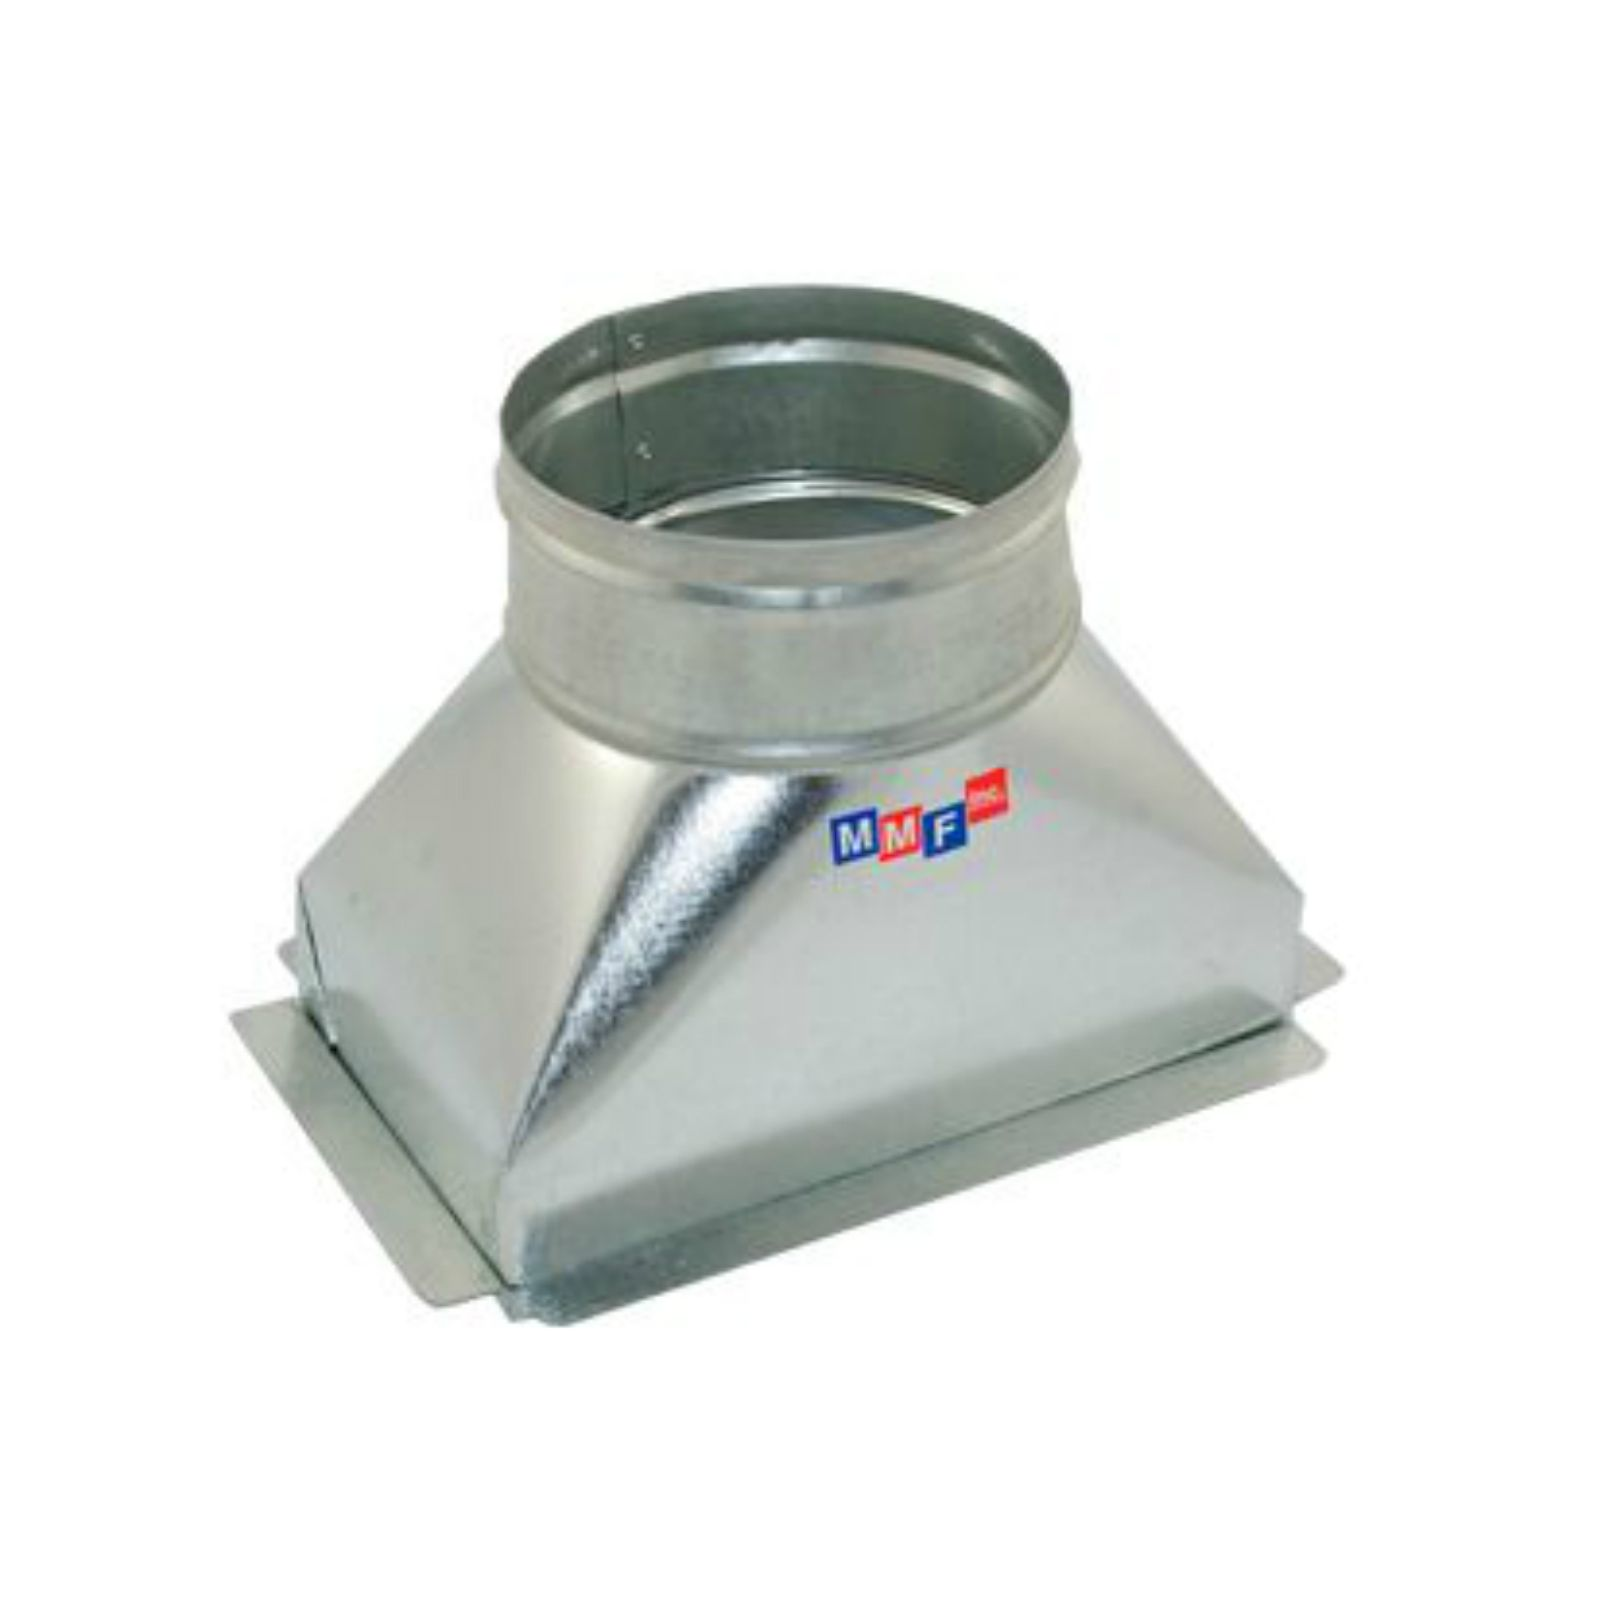 "Modular Metal BTSFG100407P - Sealed Floor Box - 30 Gauge - With Plaster Ground Flange 10"" X 04"" To 07"" Round"